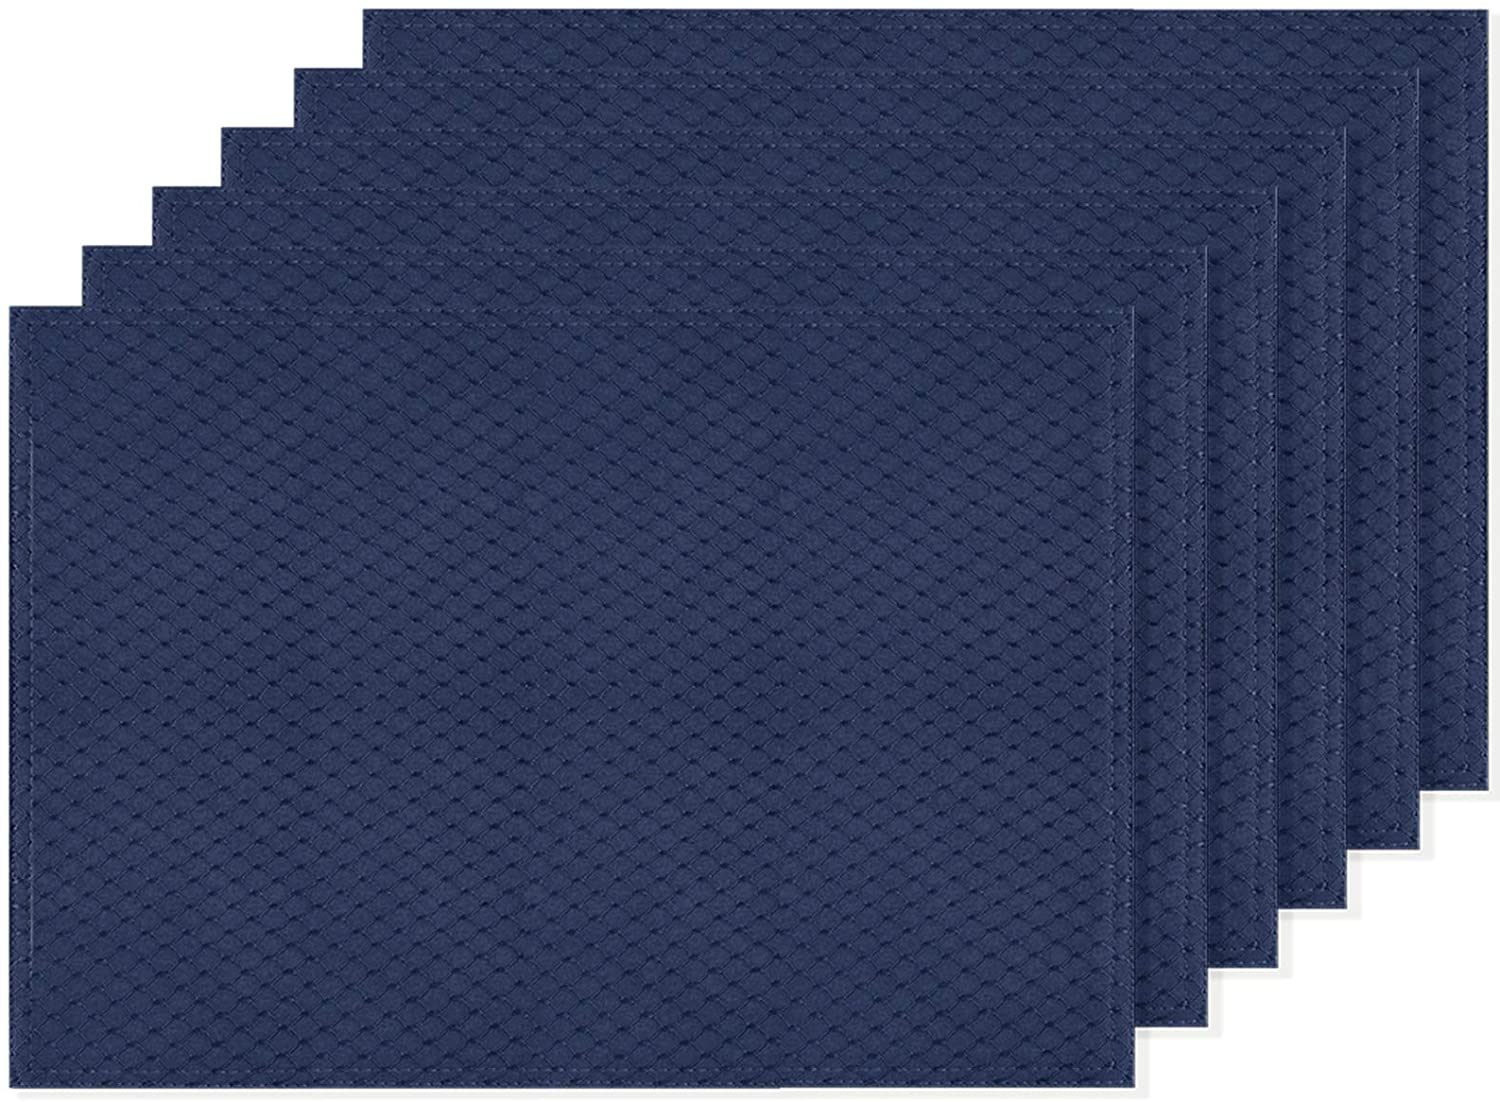 Ebecede Navy Blue Waffle Fabric Placemats for Dining Table Set of 6 Waterproof Spillproof Polyester Place Mats for Kitchen Table 13 x 19 inch